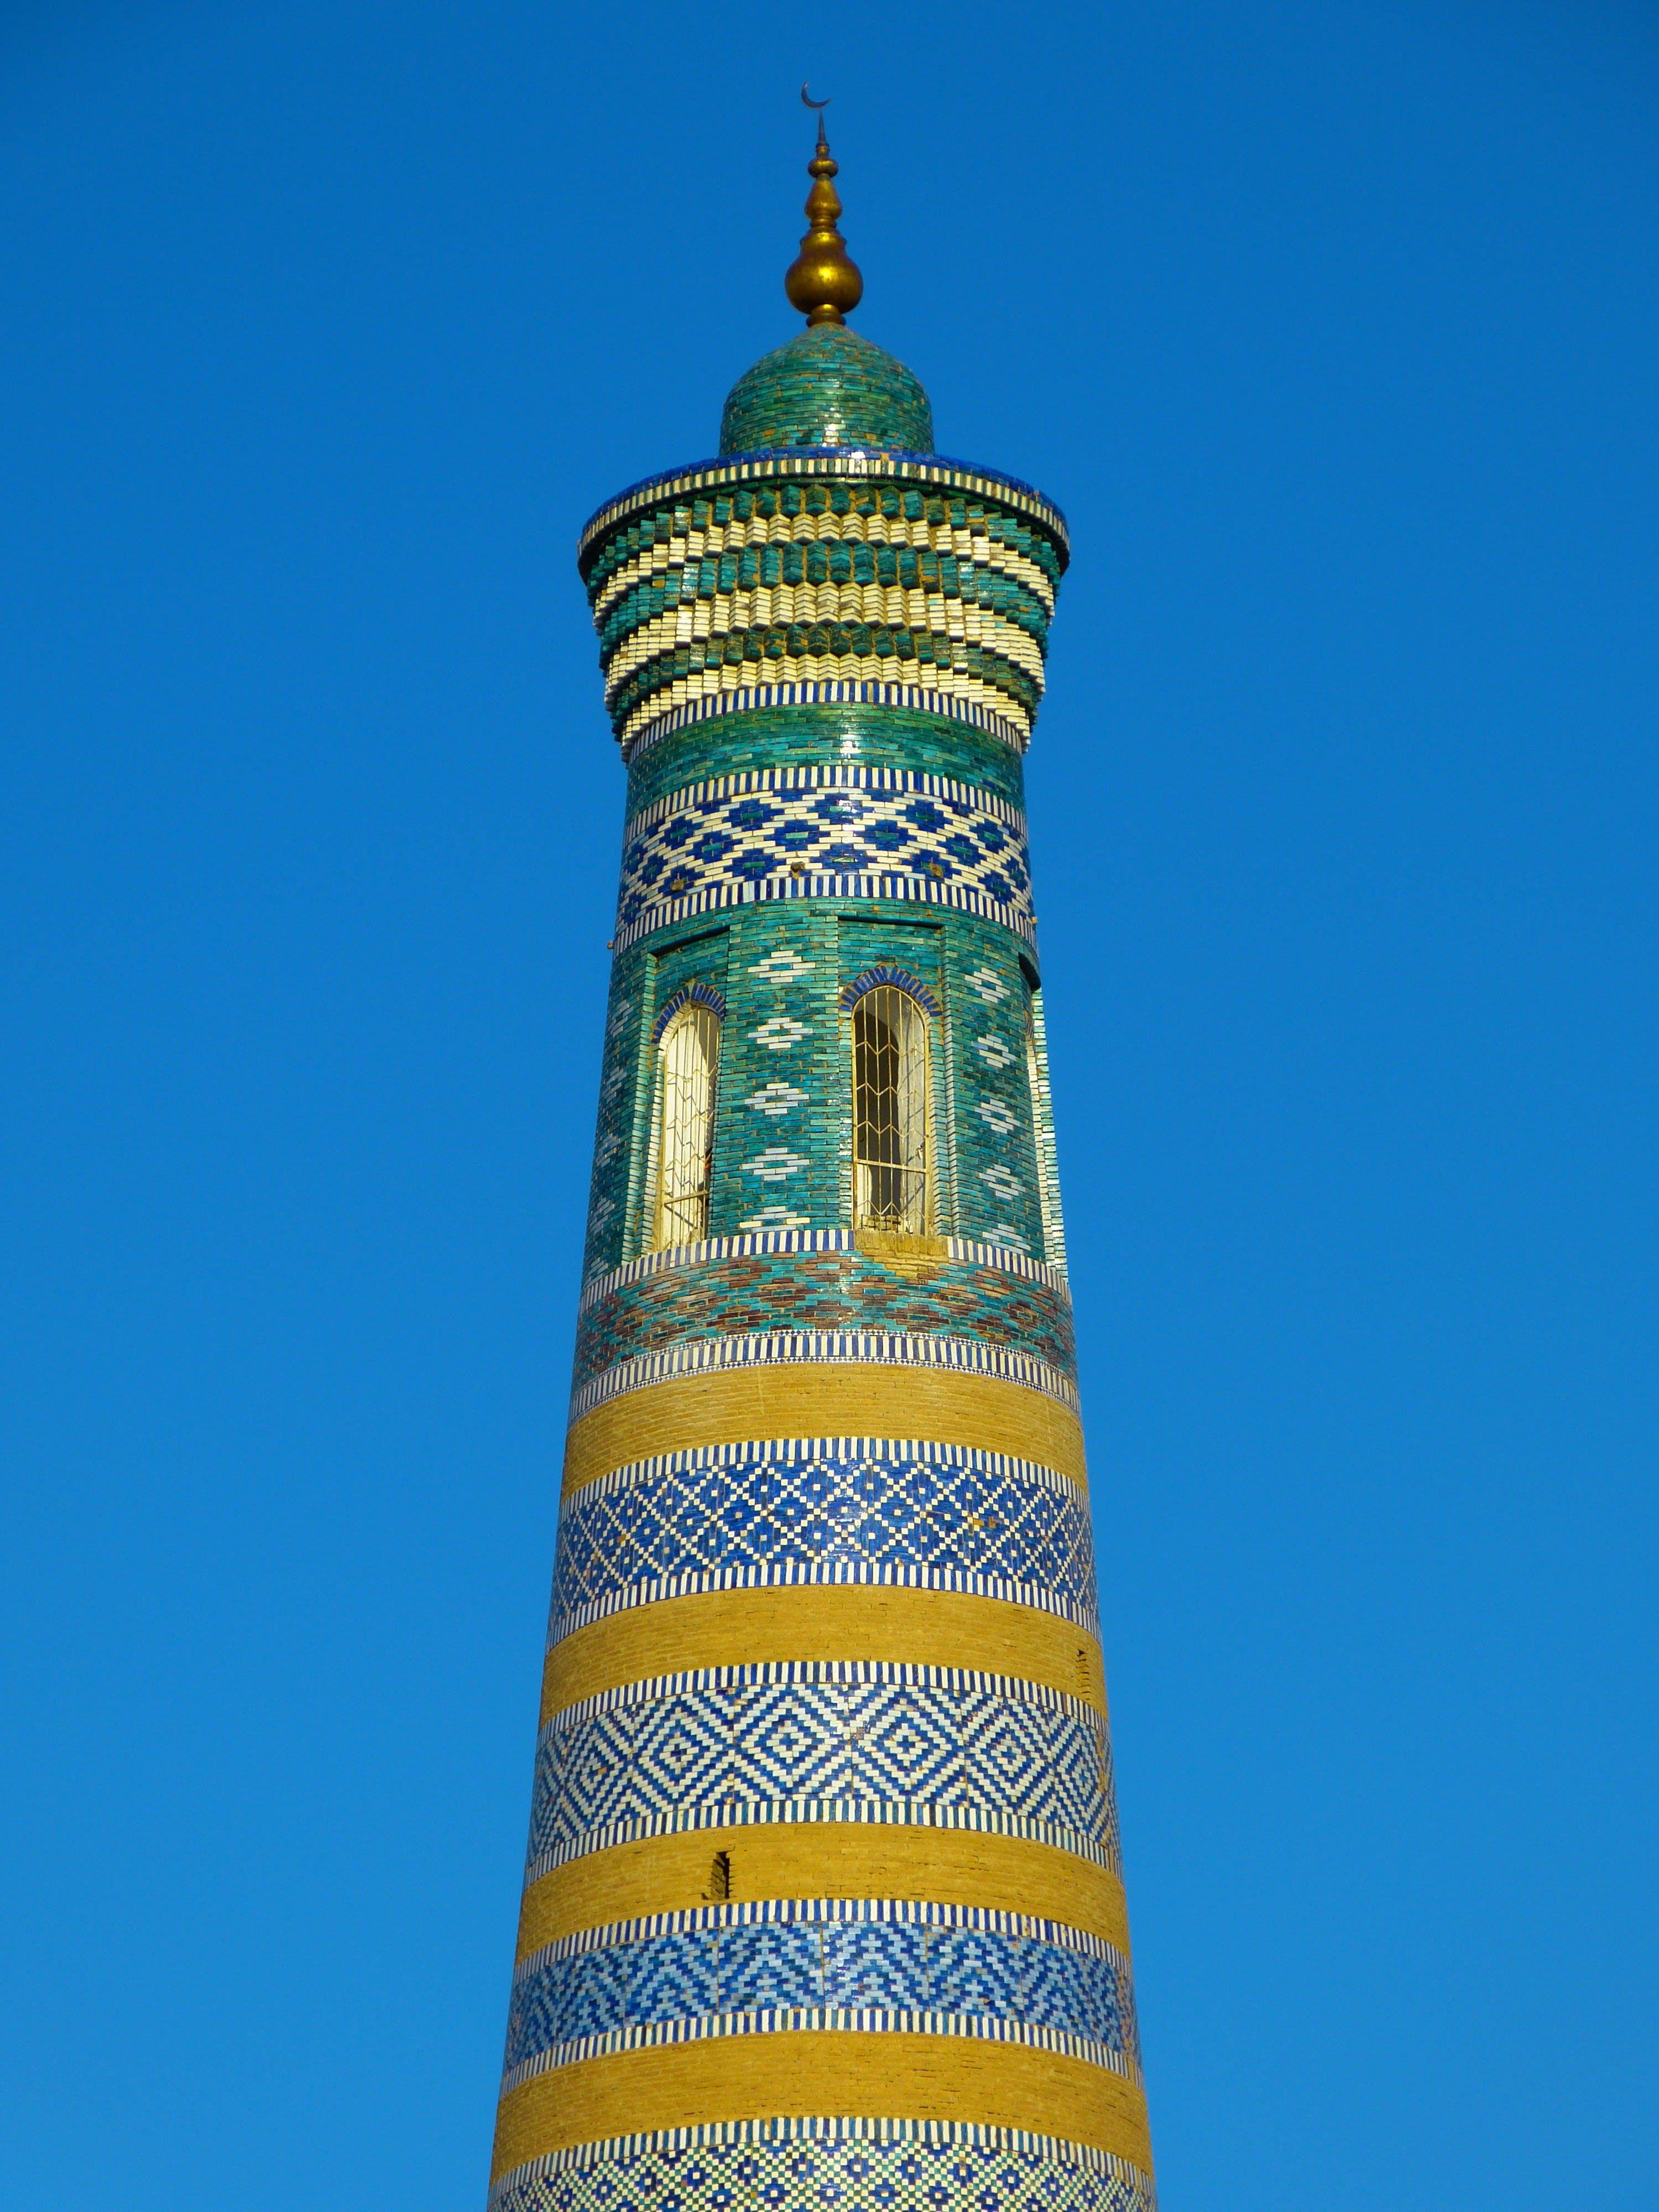 Green and Yellow Tower